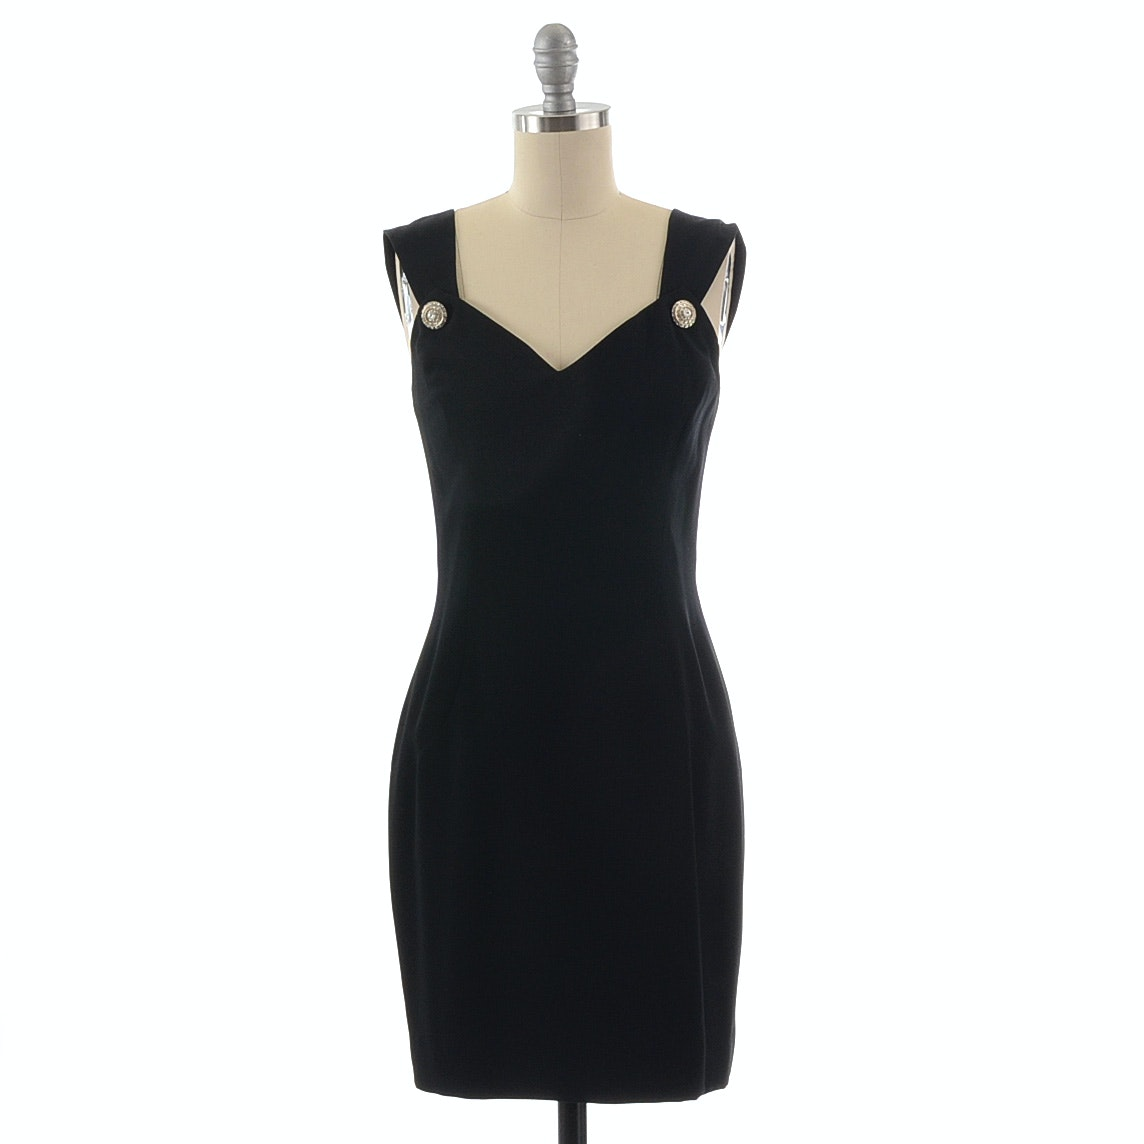 Gillian Black Sleeveless Cocktail Dress Accented with Rhinestone Buttons